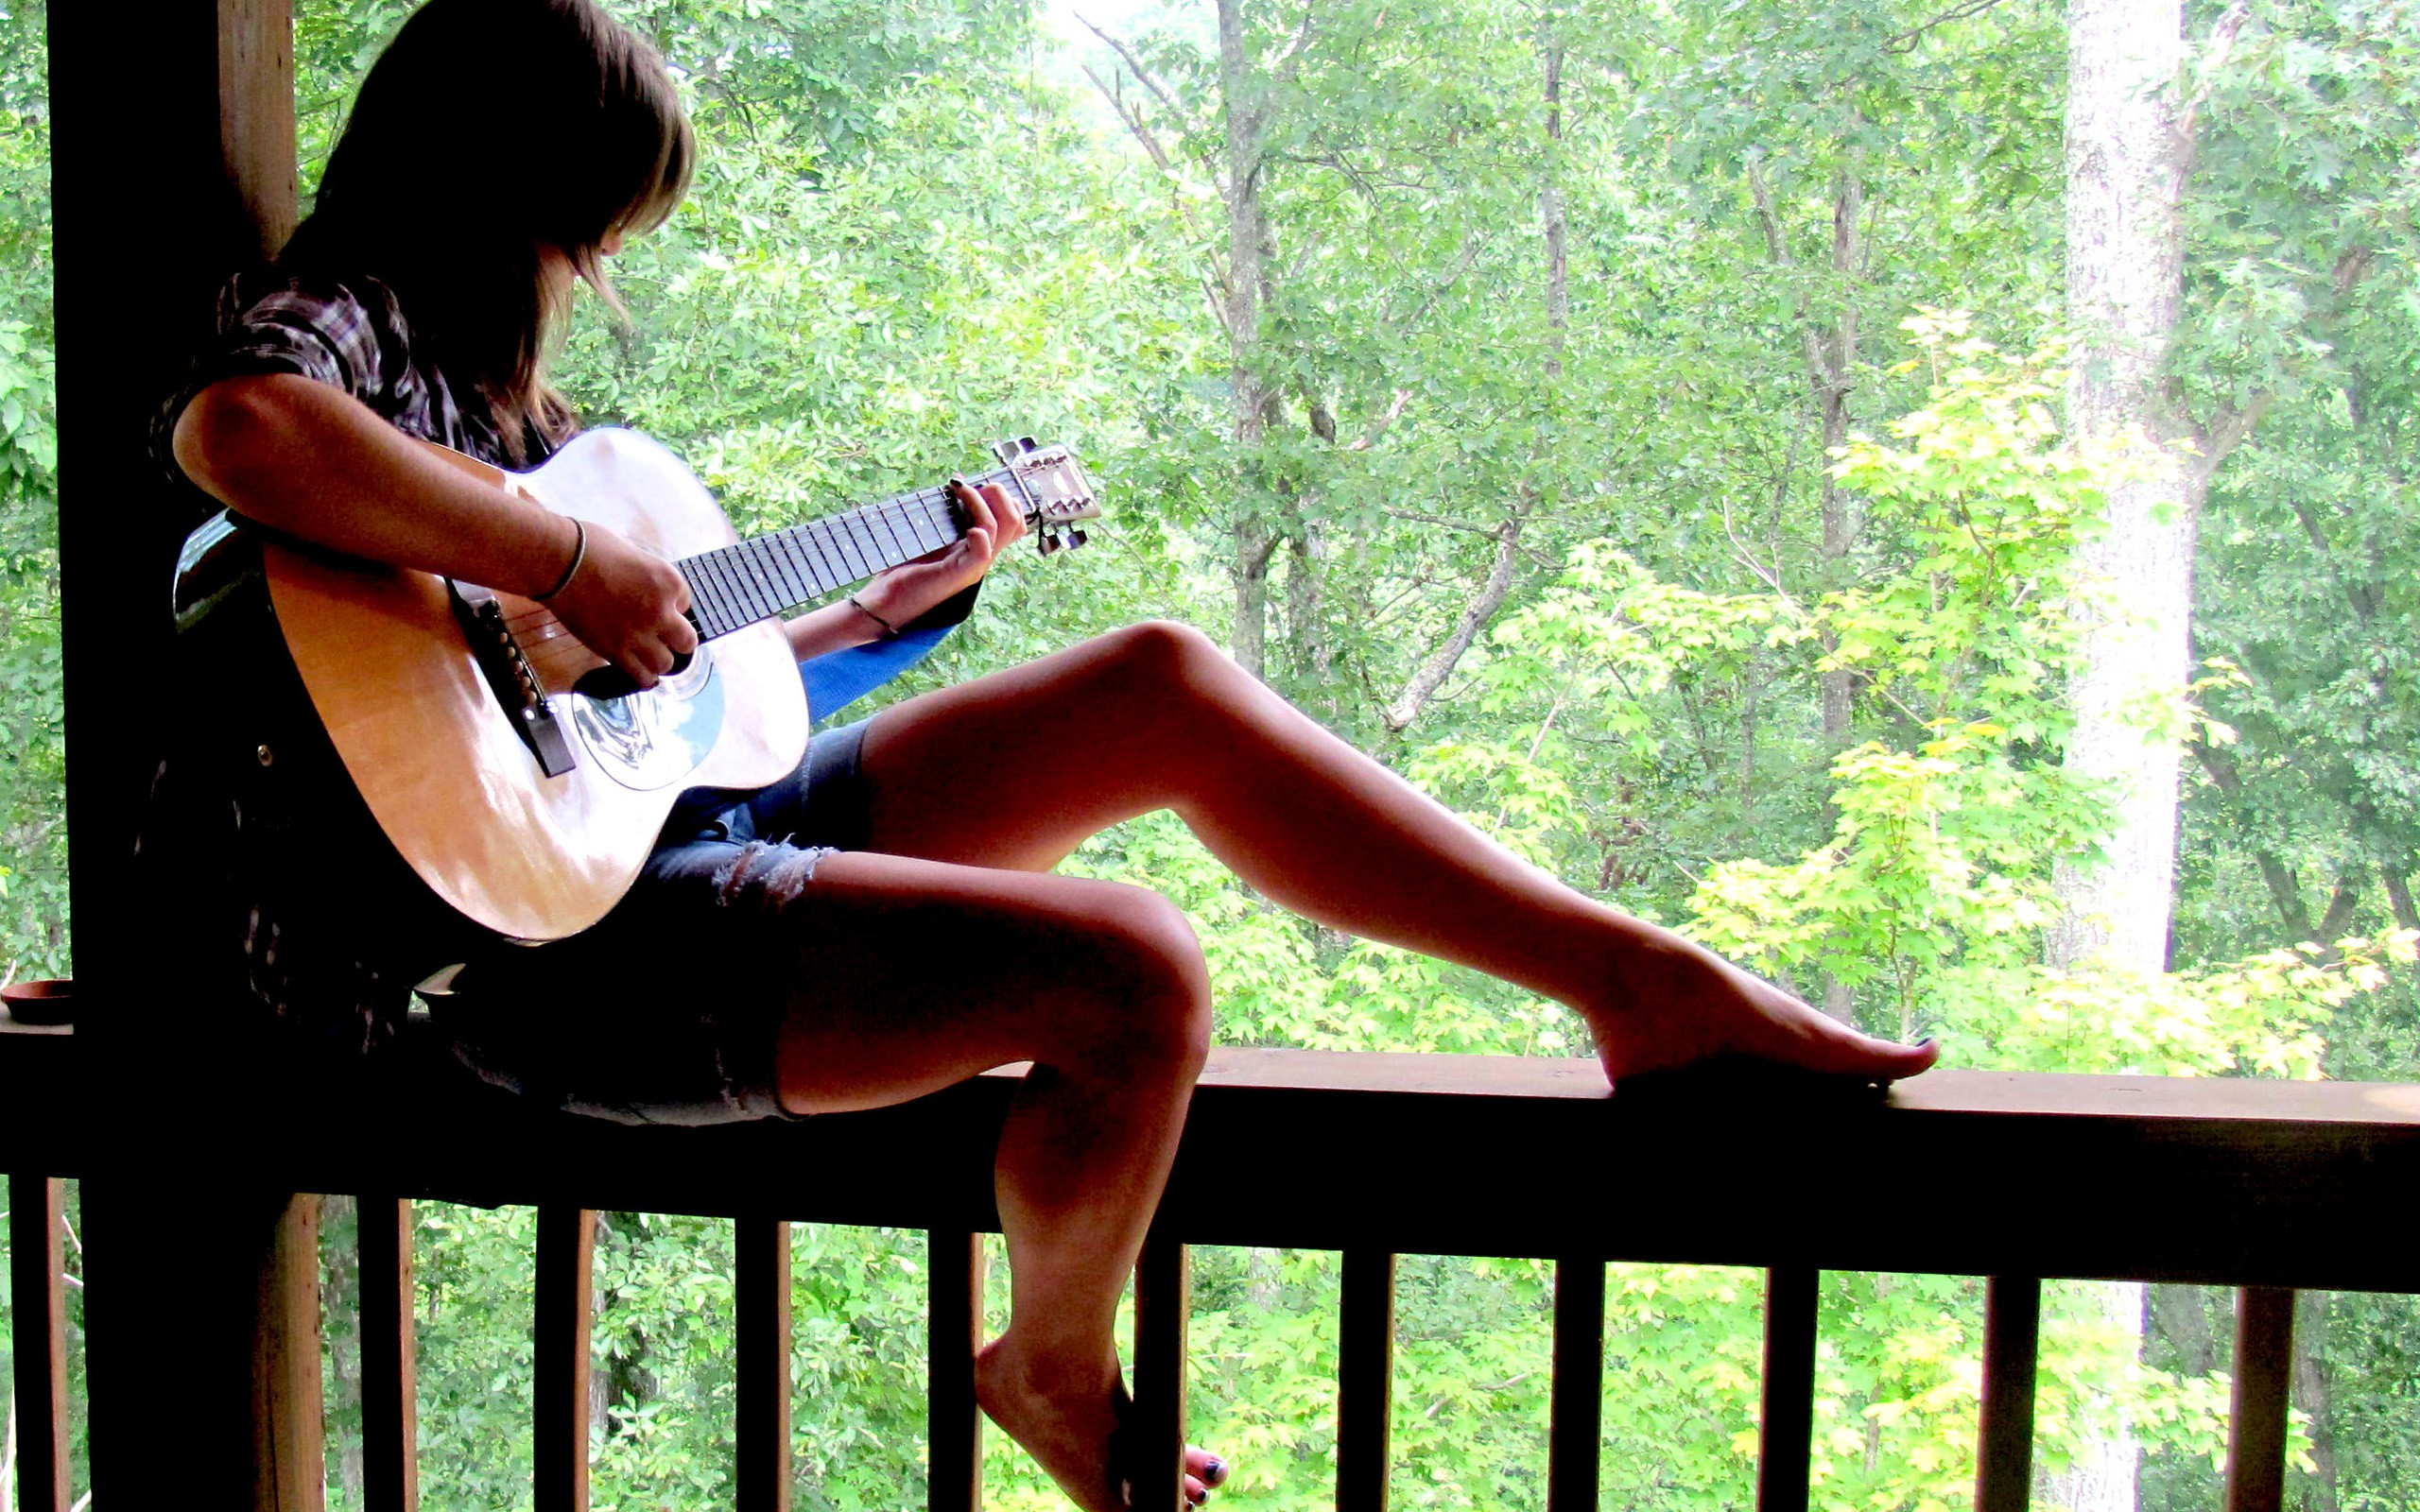 Chica y guitarra hd 2560x1600  imagenes  wallpapers gratis